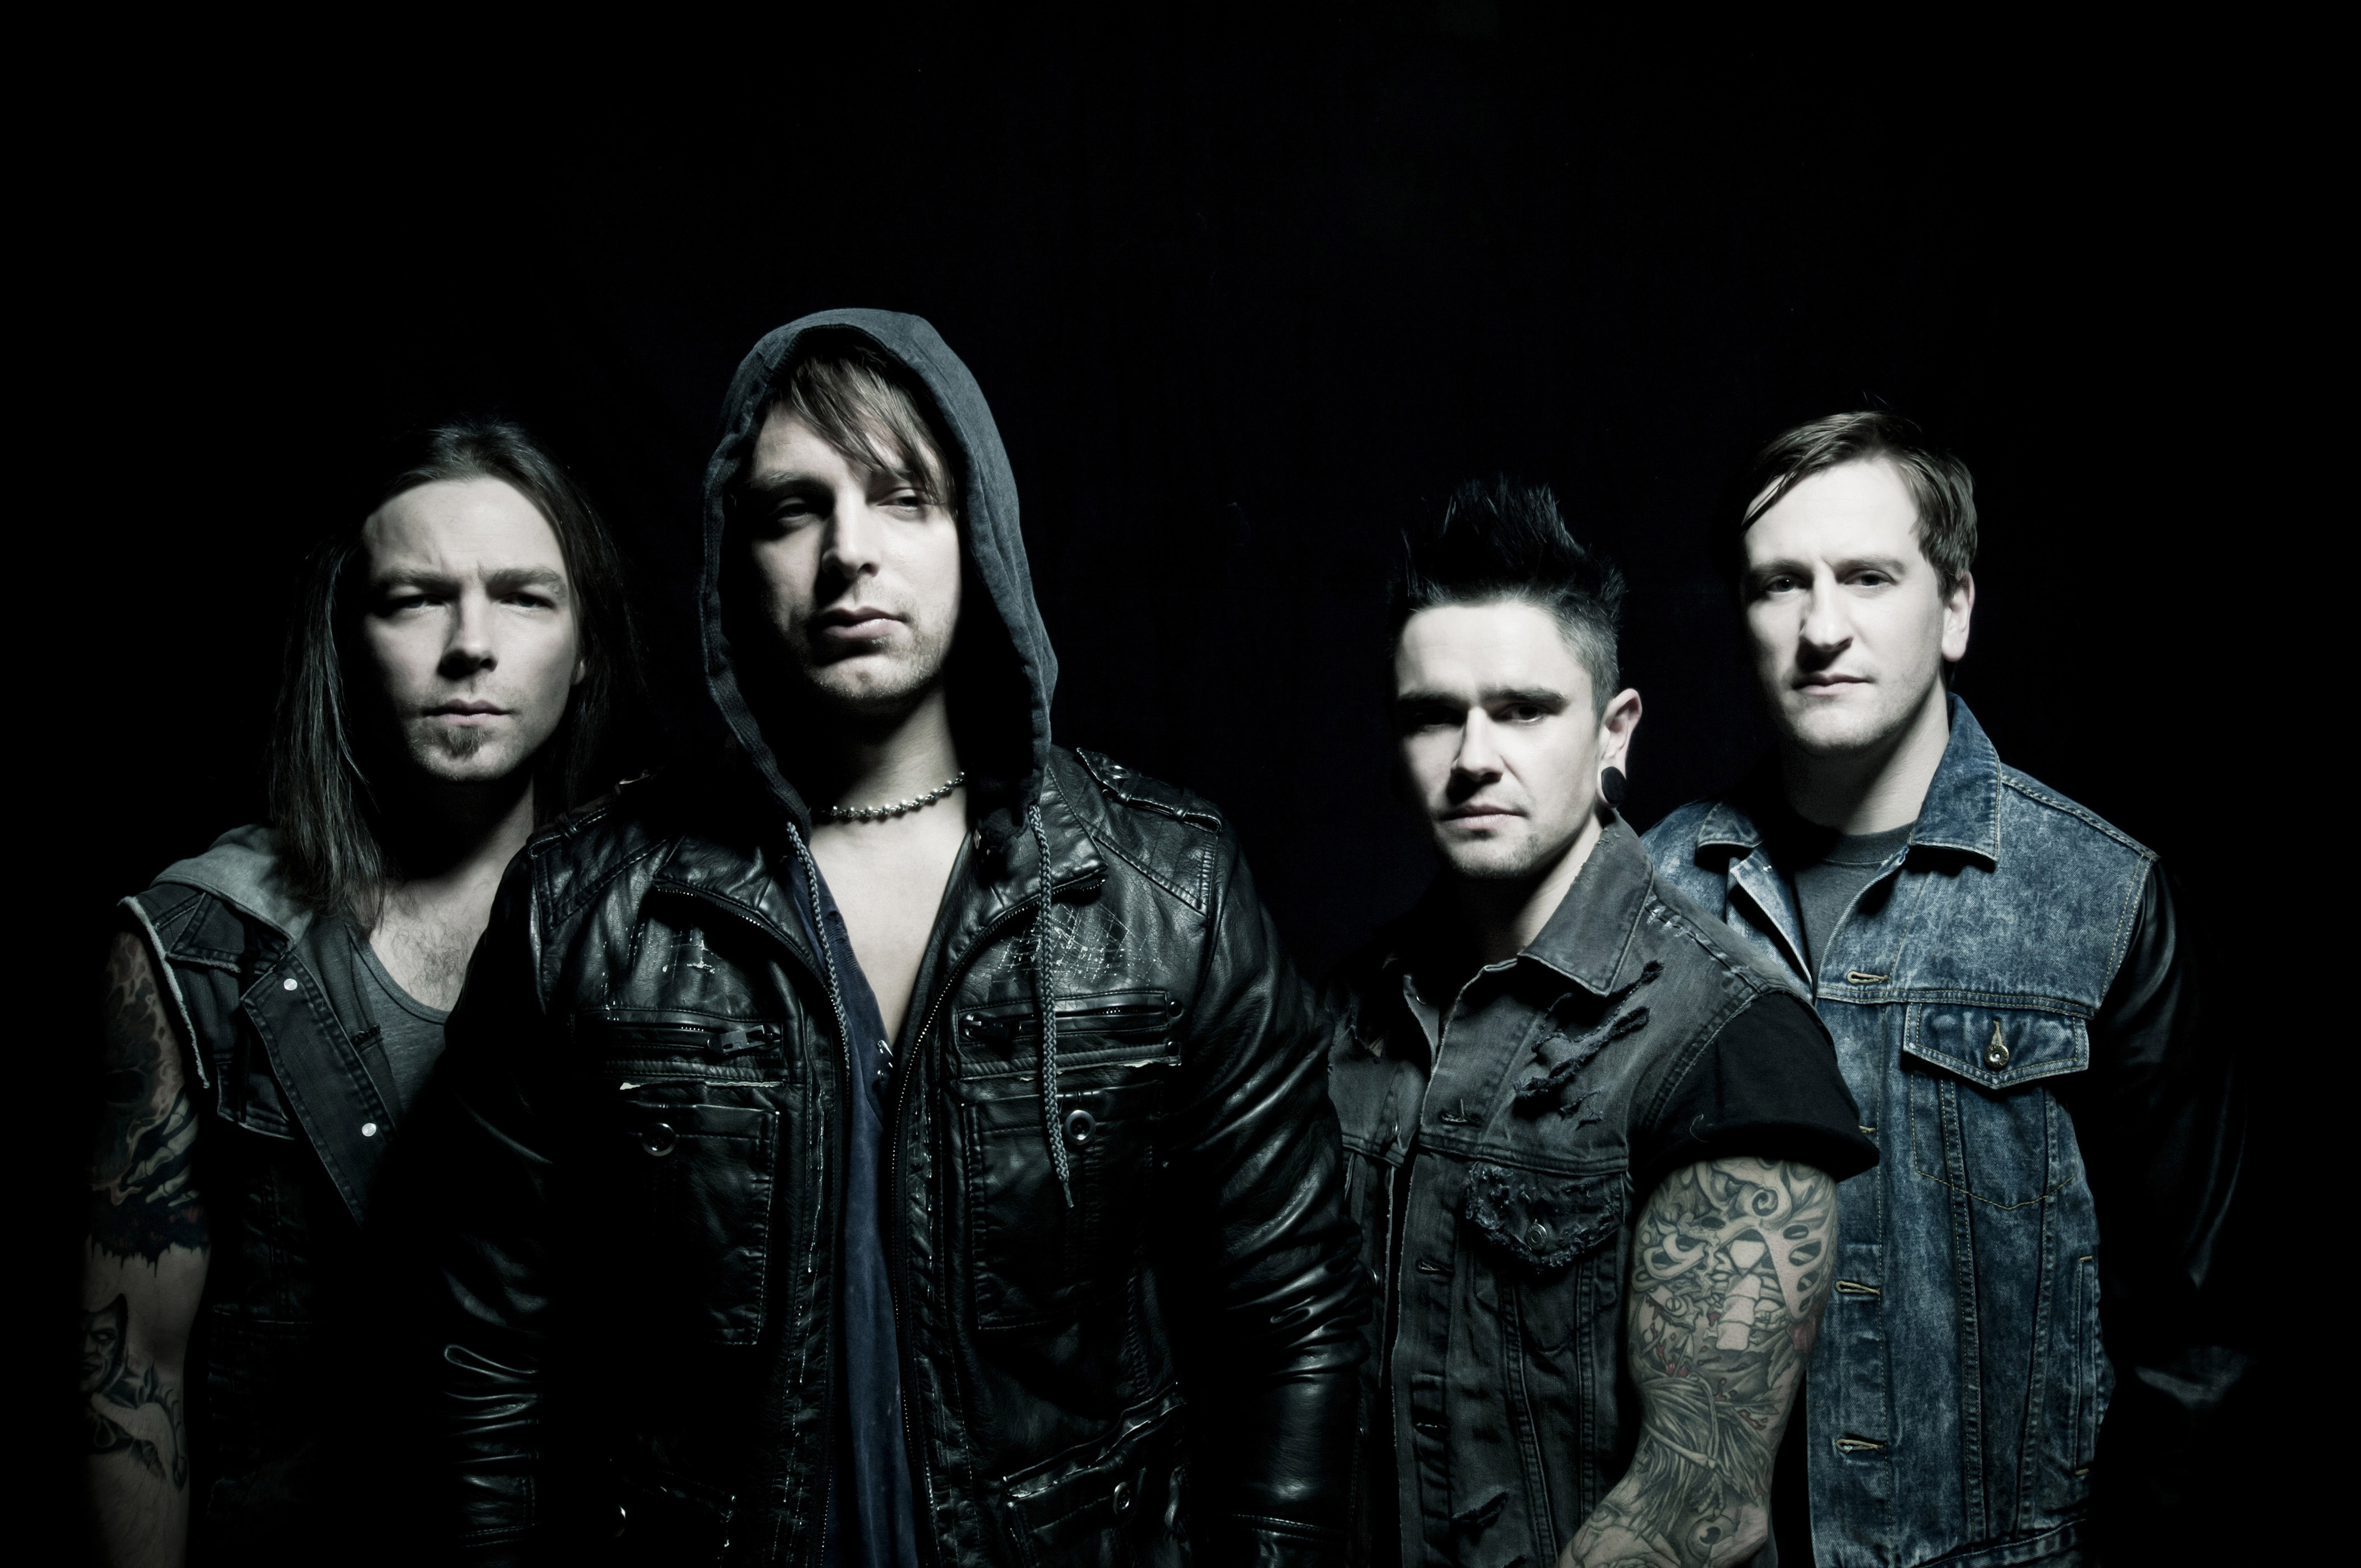 Bullet for my Valentine are to play at the O2 Academy Birmingham in March